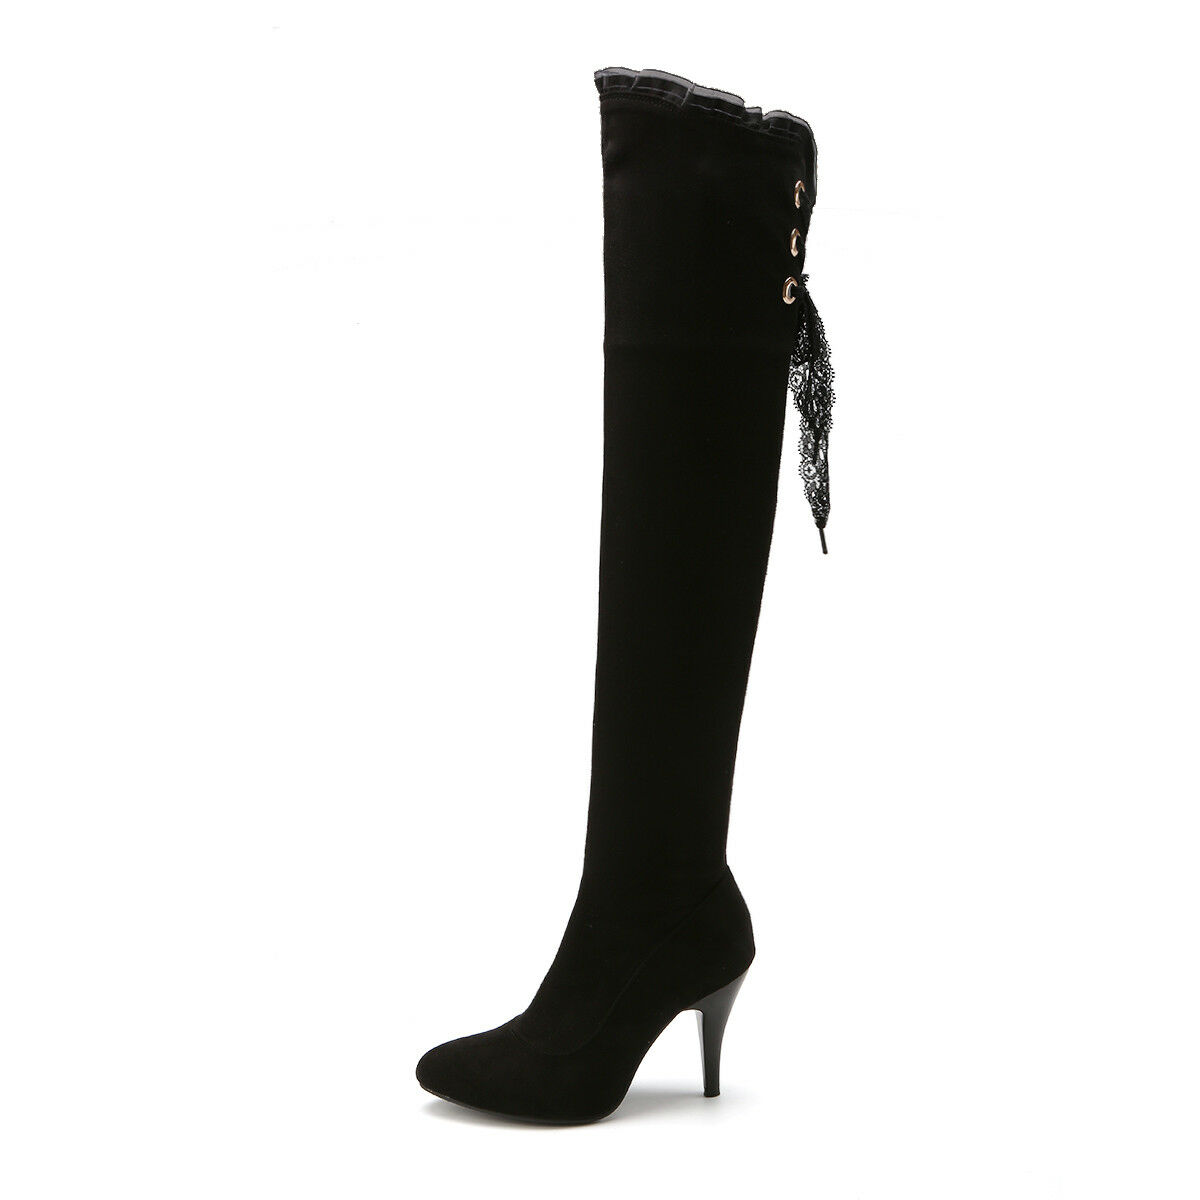 Winter Women's Faux Thigh Suede High Heels Thigh Faux High Over the Knee Boots Shoes Black f2b4d9